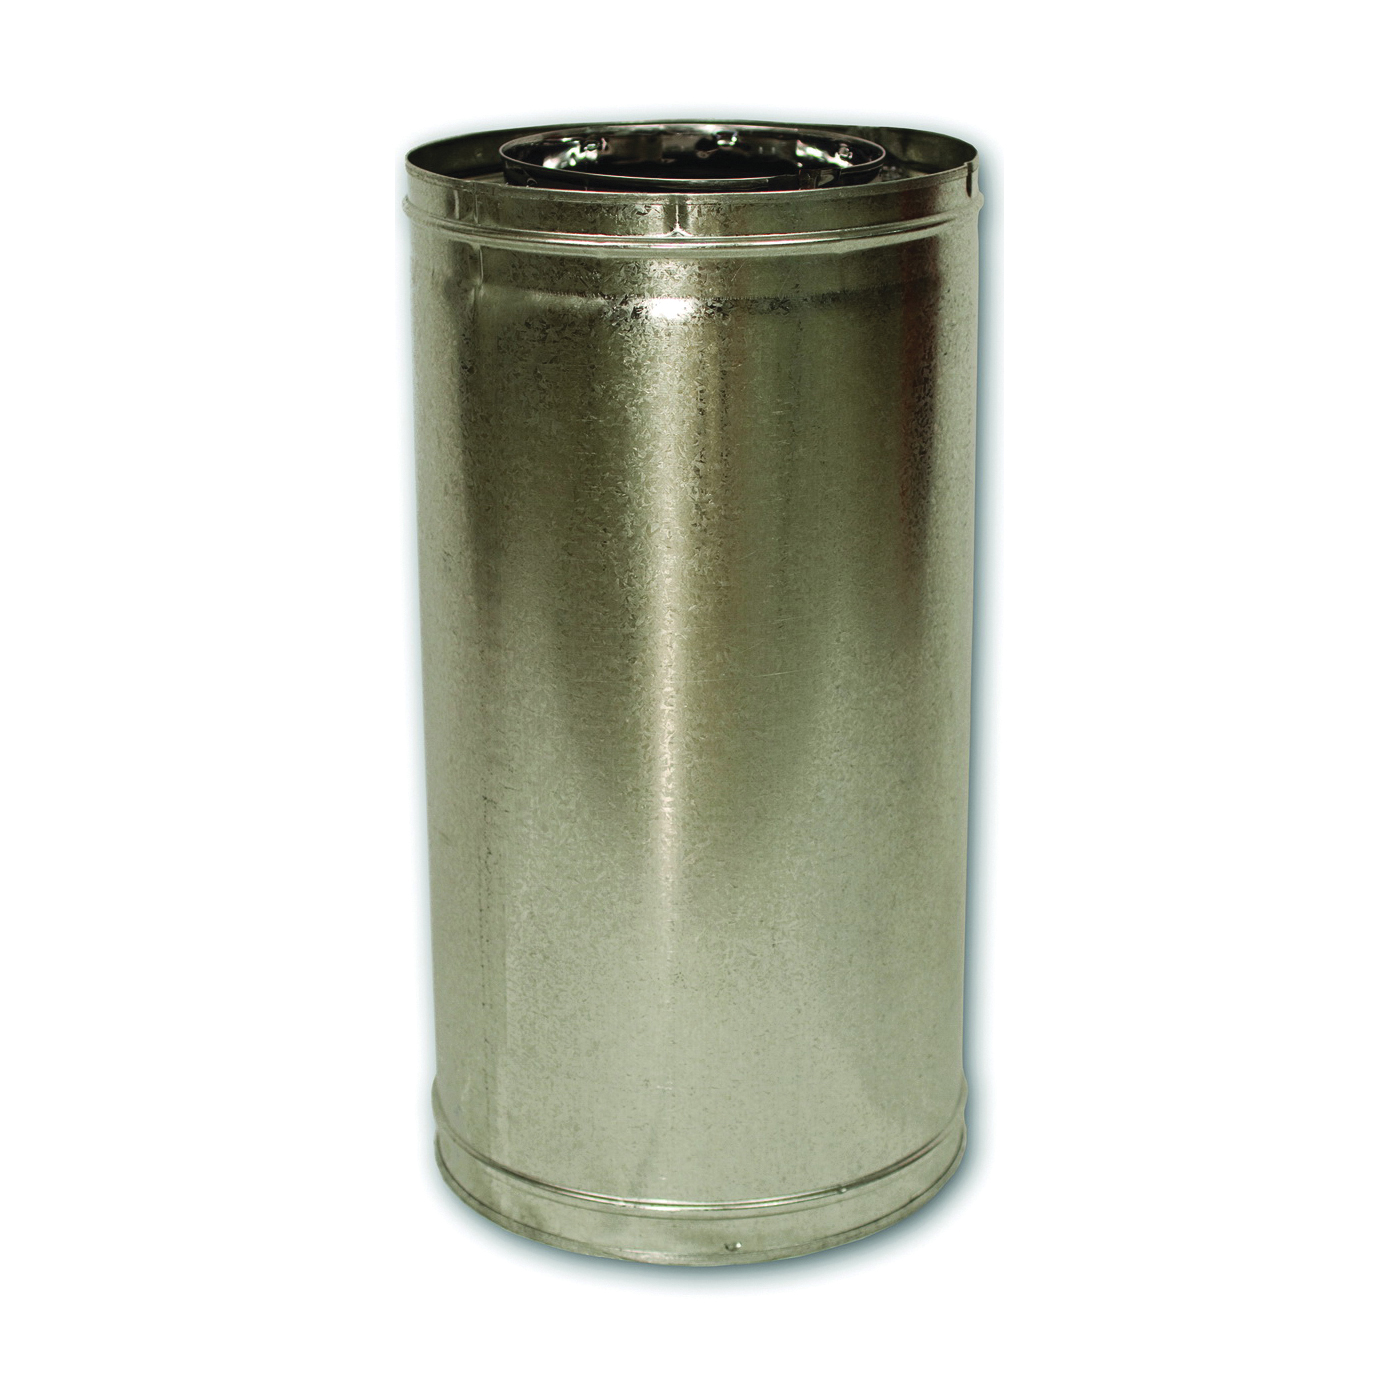 Picture of Comfort Flame 24-8DM Chimney Pipe, 12-3/8 in OD, 24 in L, Galvanized Steel